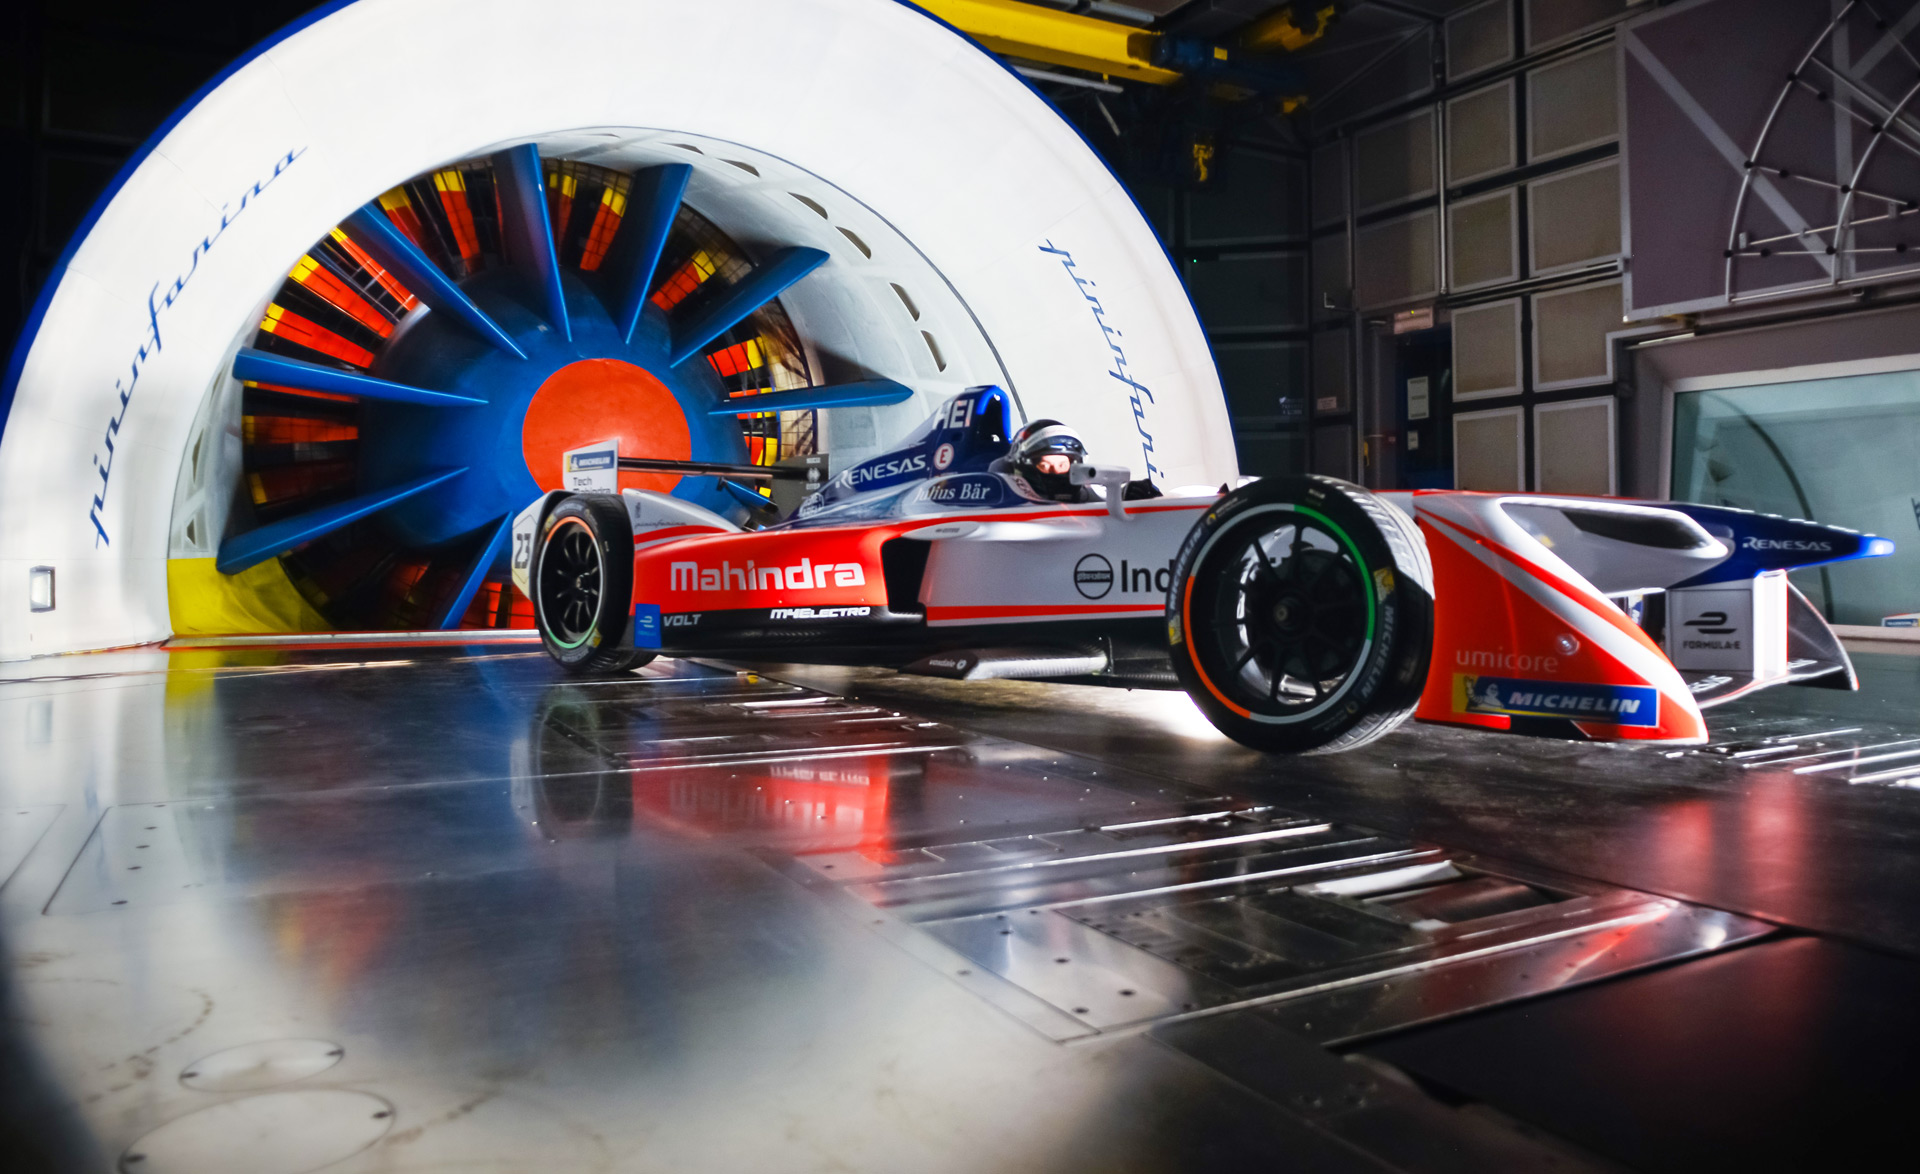 pininfarina enters formula e as sponsor of mahindra racing rh motorauthority com